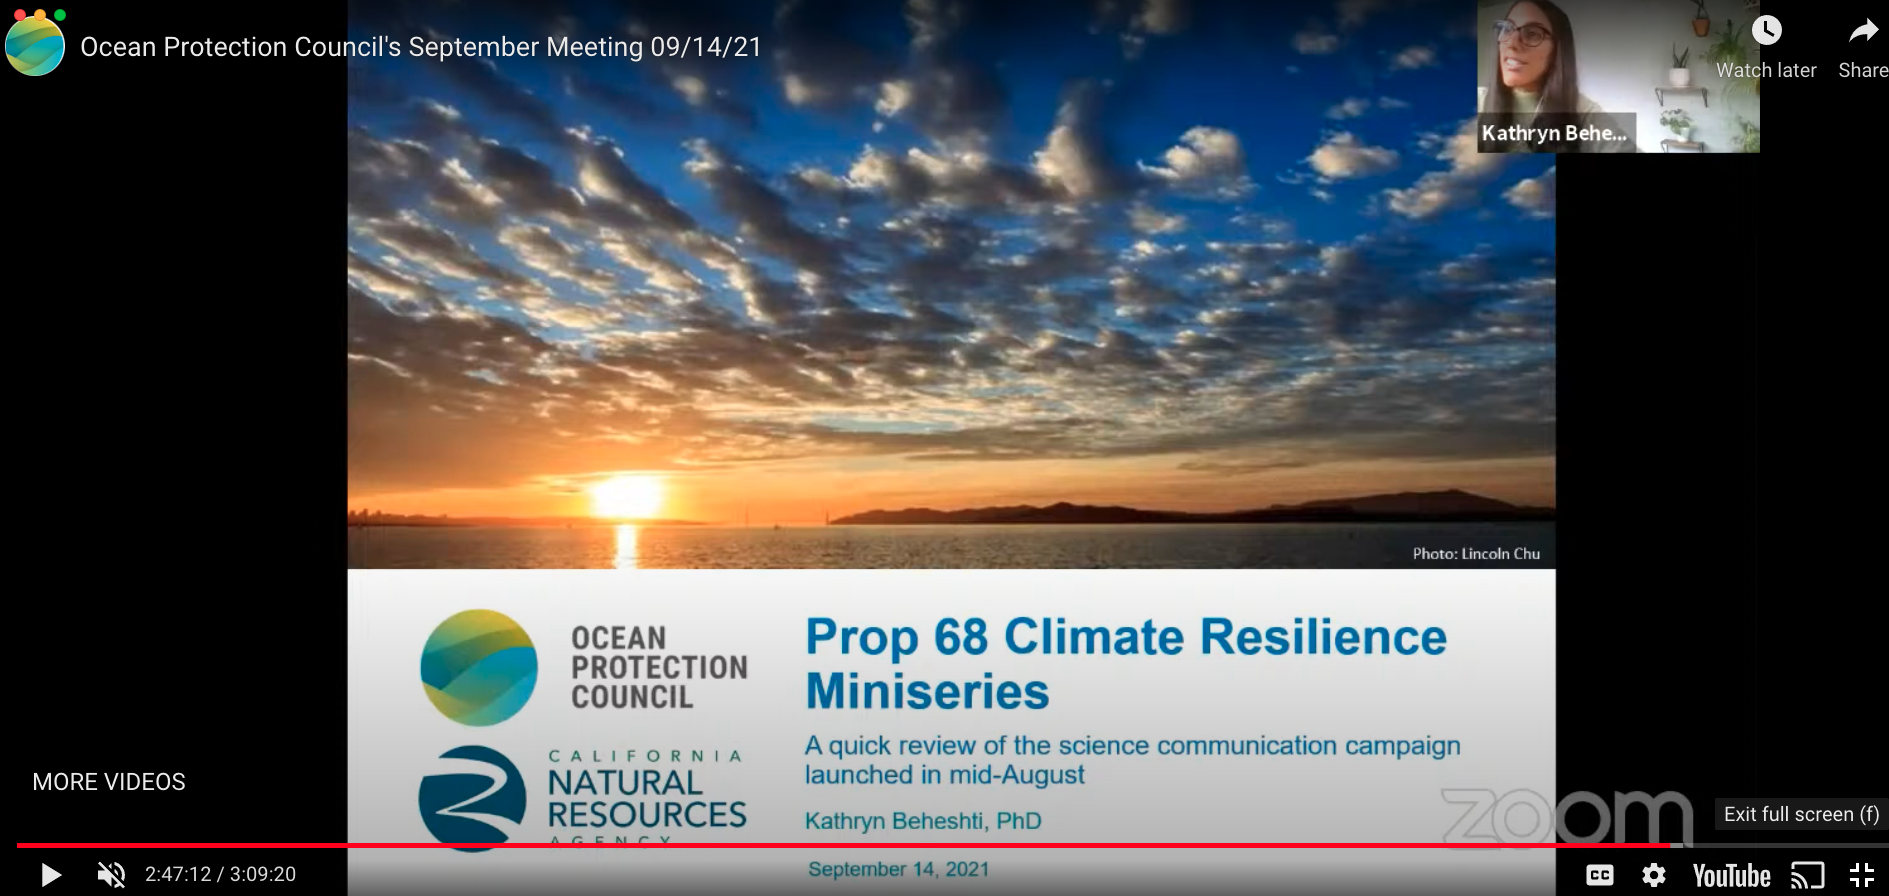 Most recently, Kat presented an informational agenda item at the September Council Meeting where she highlighted some of the science communication work she has been leading at OPC. The focus of this agenda item was the Prop 68 Climate Resilience Miniseries, which launched August 16th.